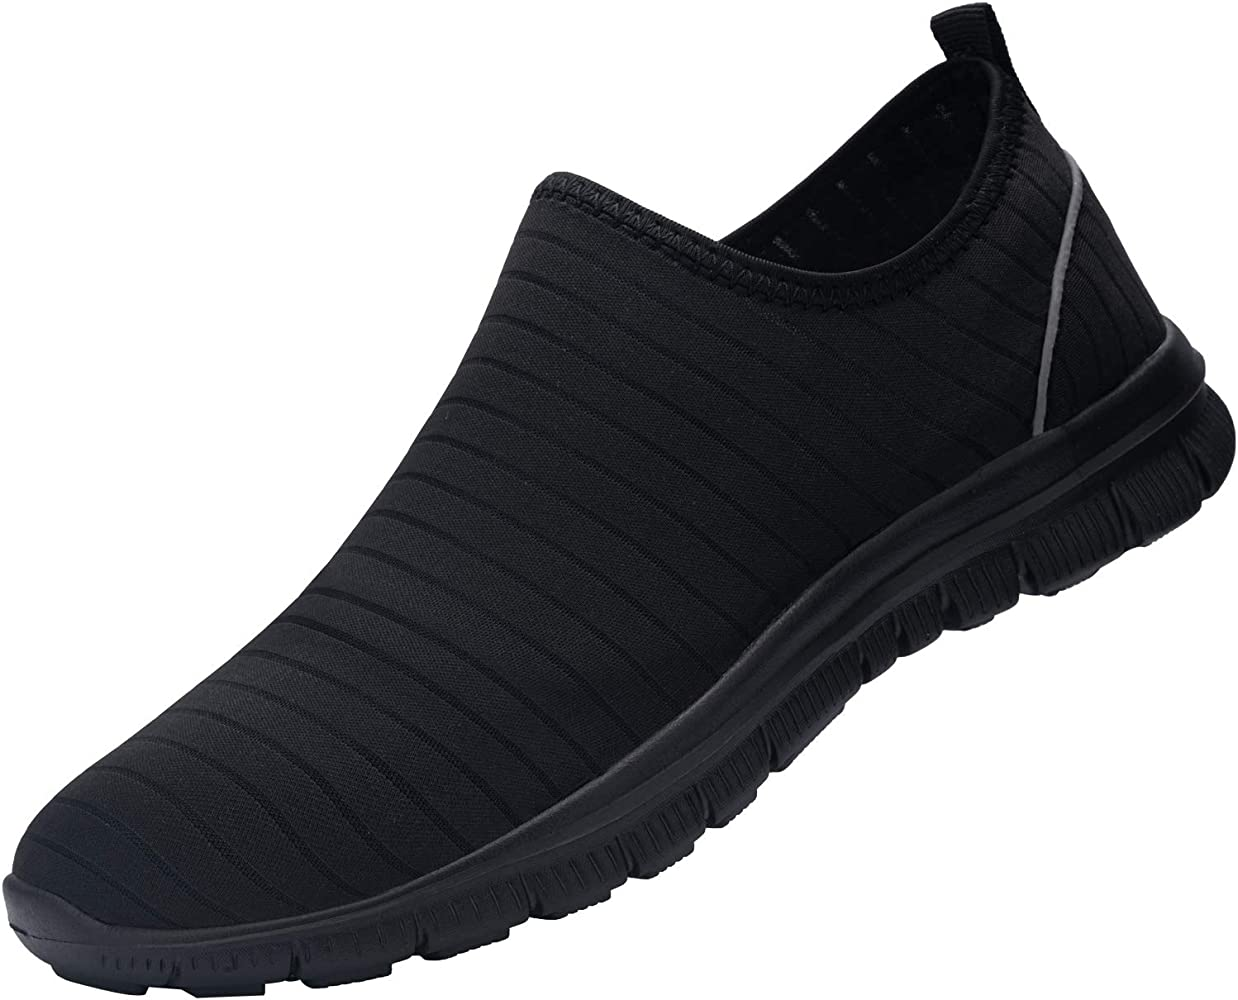 DYKHMILY Steel Toe Water Shoes